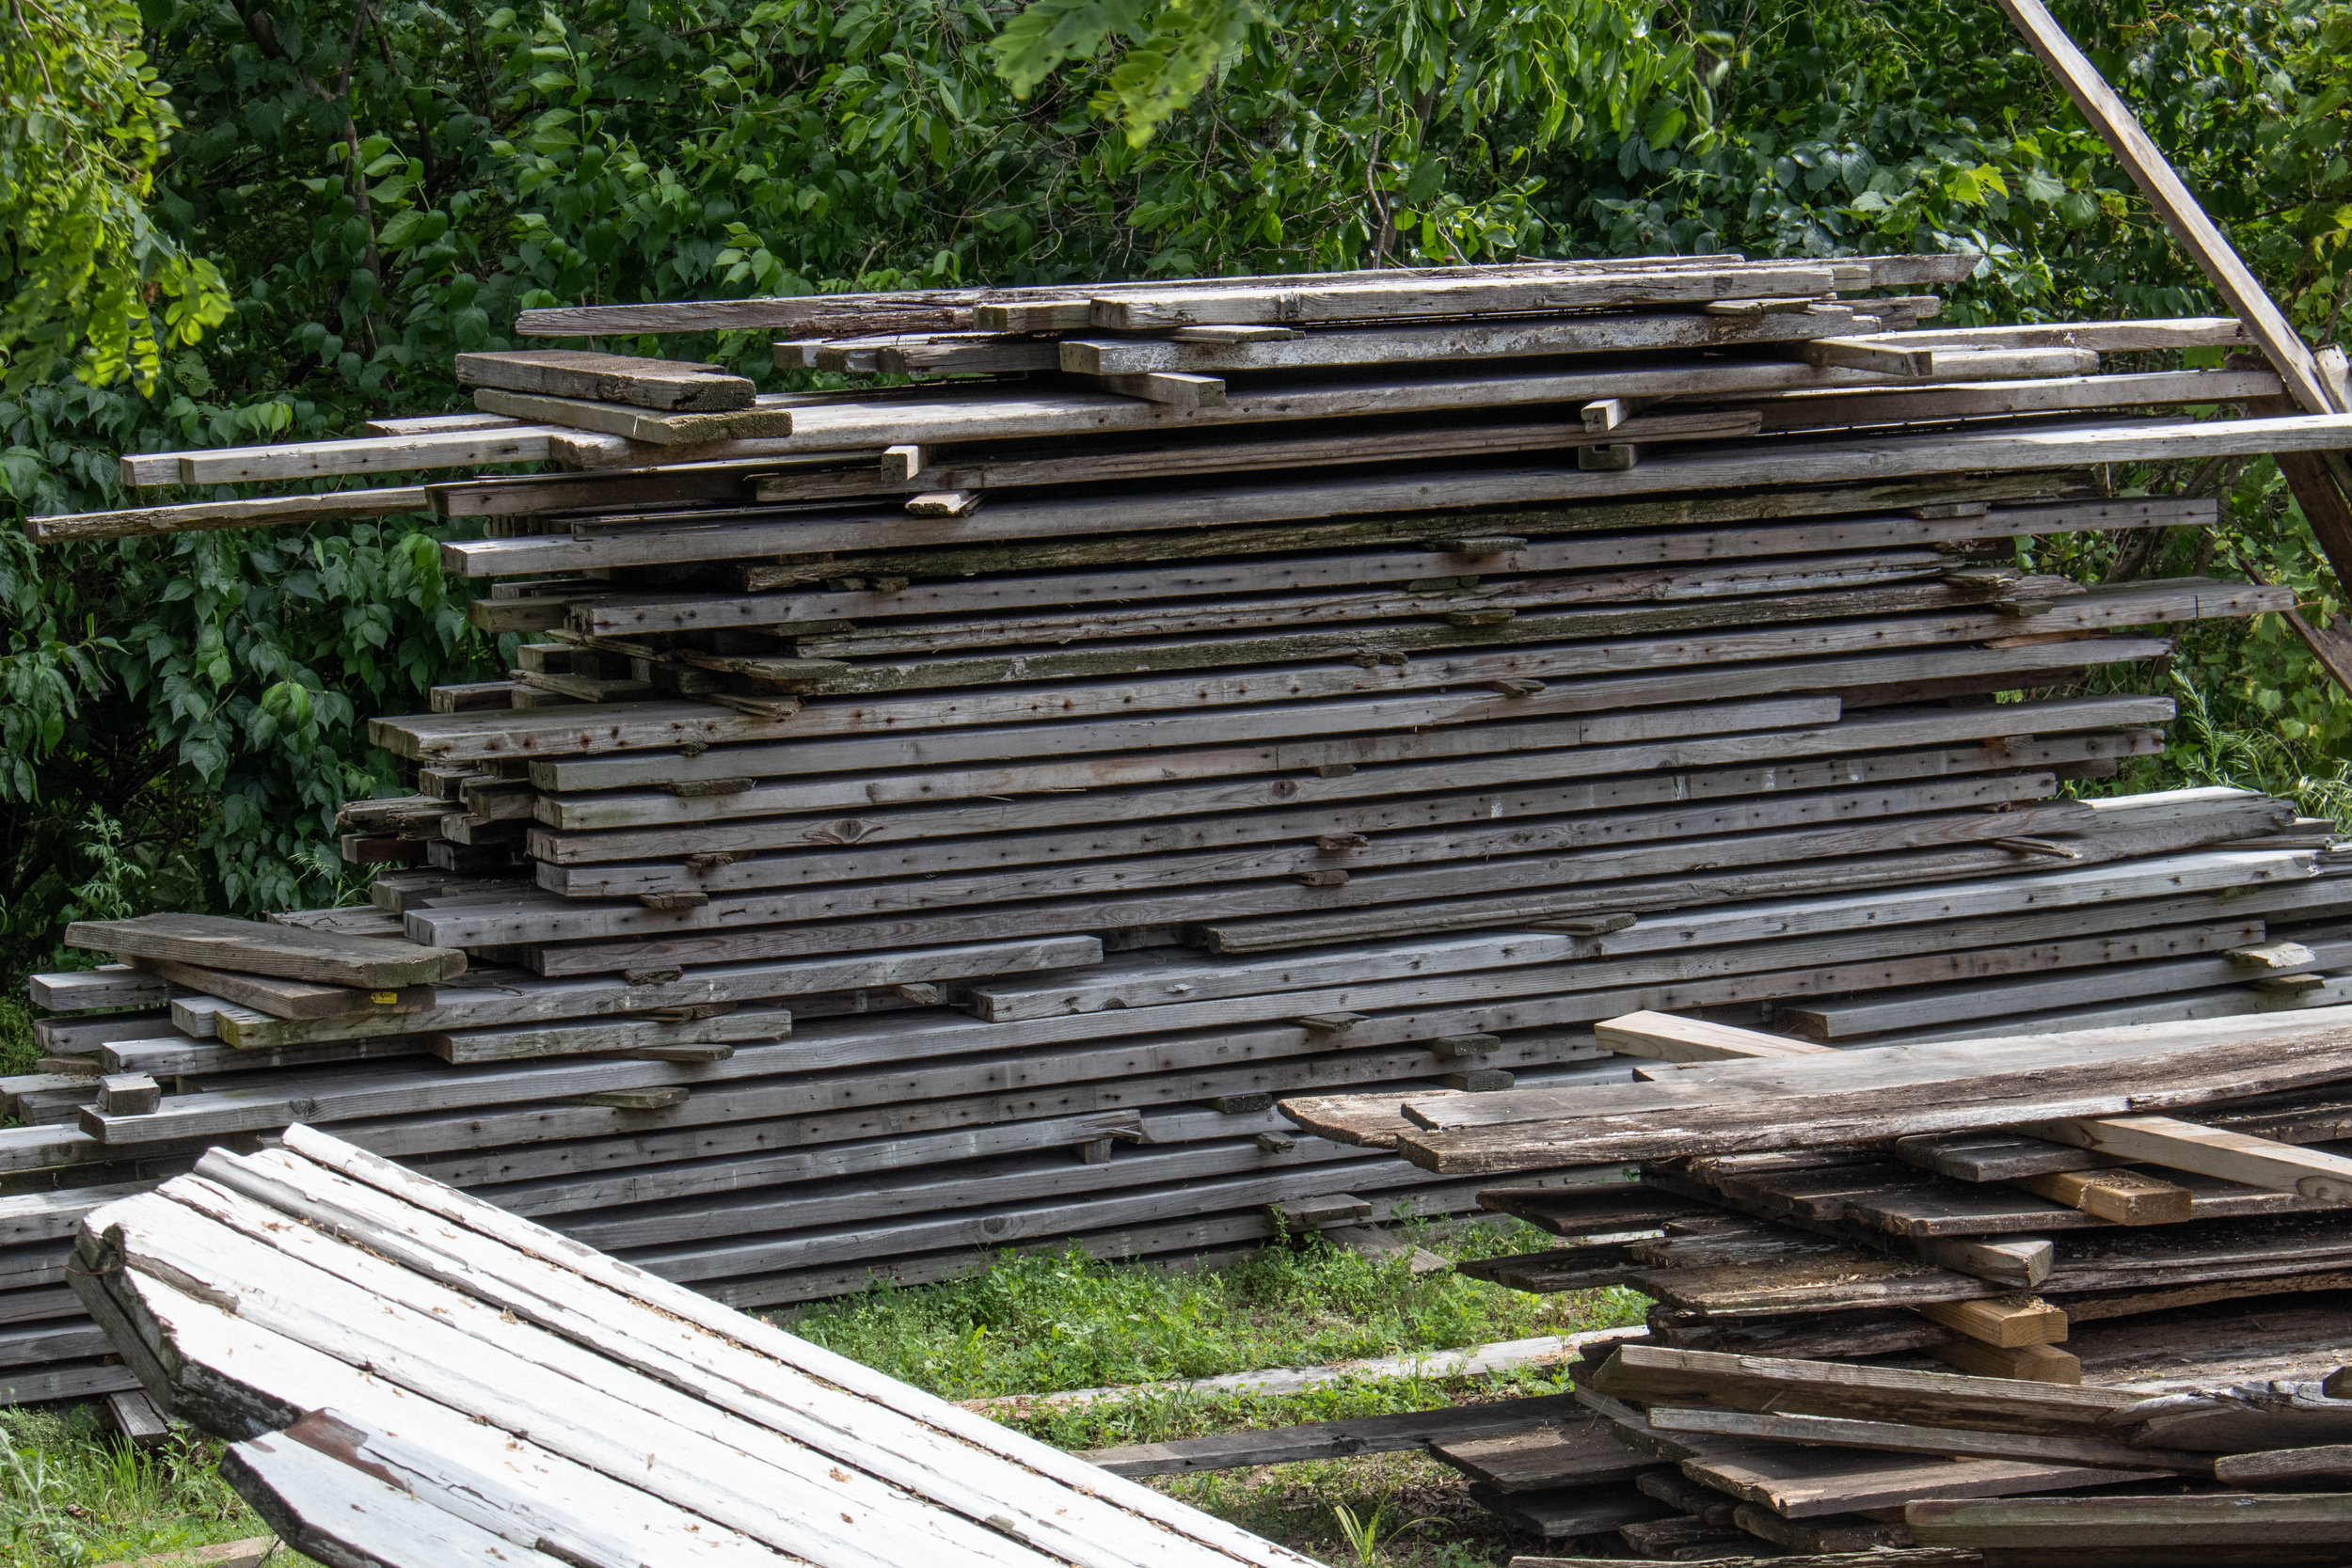 We sell reclaimed barn wood salvaged from old Indiana barns. Click on this photo for more inventory photos! Please contact us for more information on dimensions and pricing.